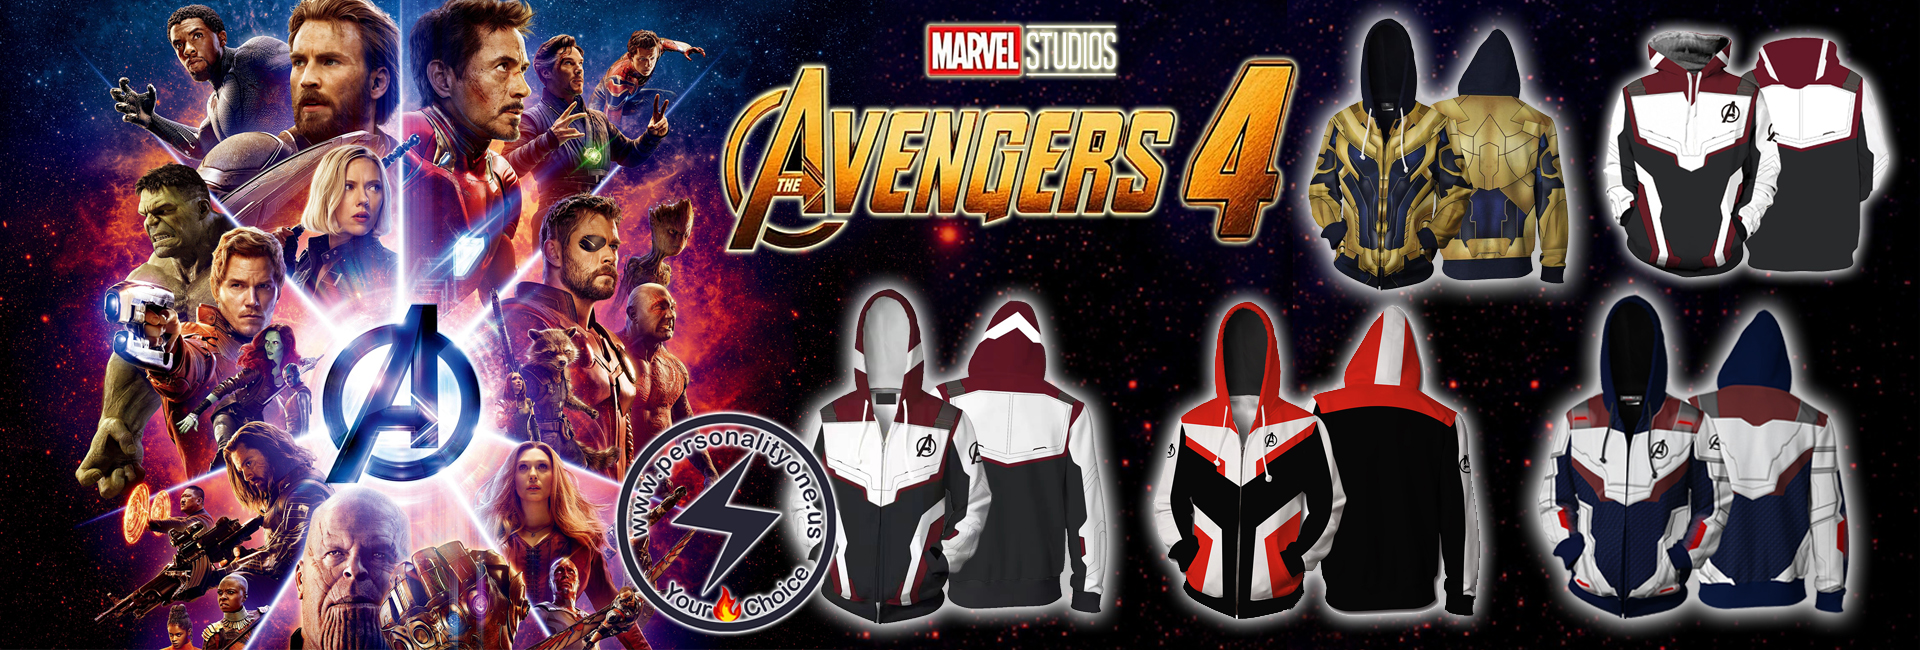 THE AVENGERS 4 AVENGERS: ENDGAME THE ADVANCED TECH SUITS WHITE SUIT COSPLAY ZIP UP HOODIE JACKET